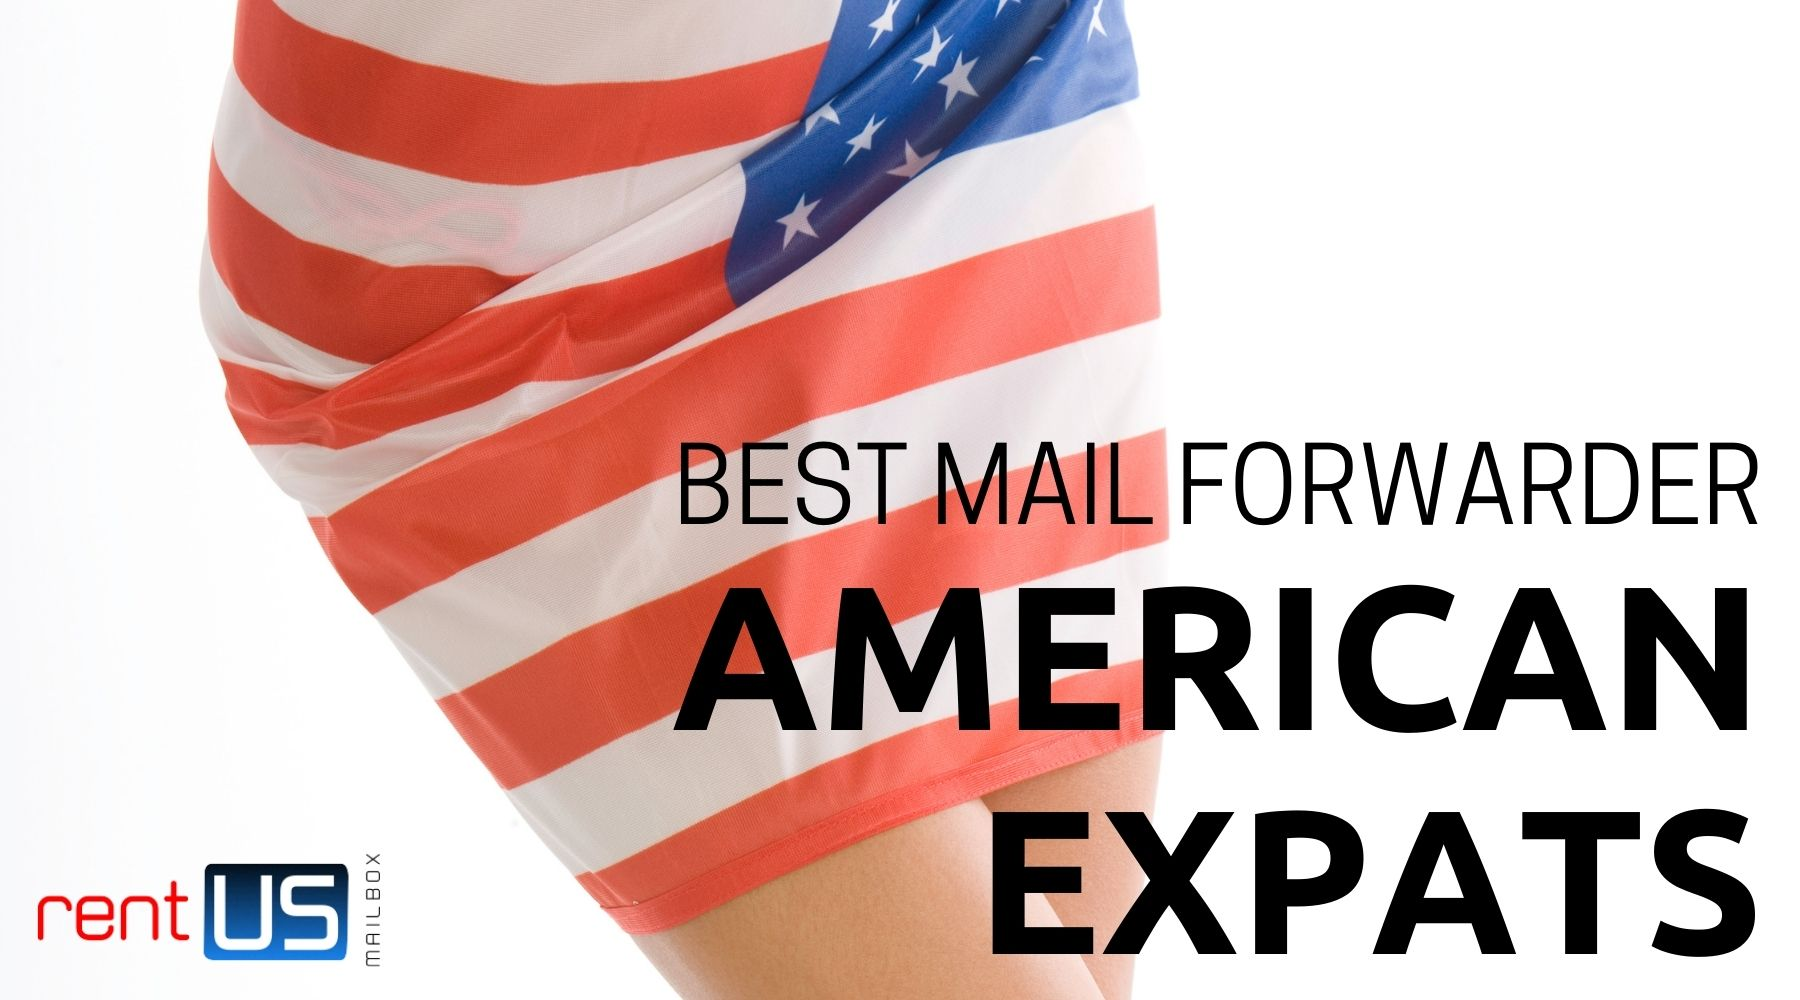 U.S Mail Forwarder For Expats